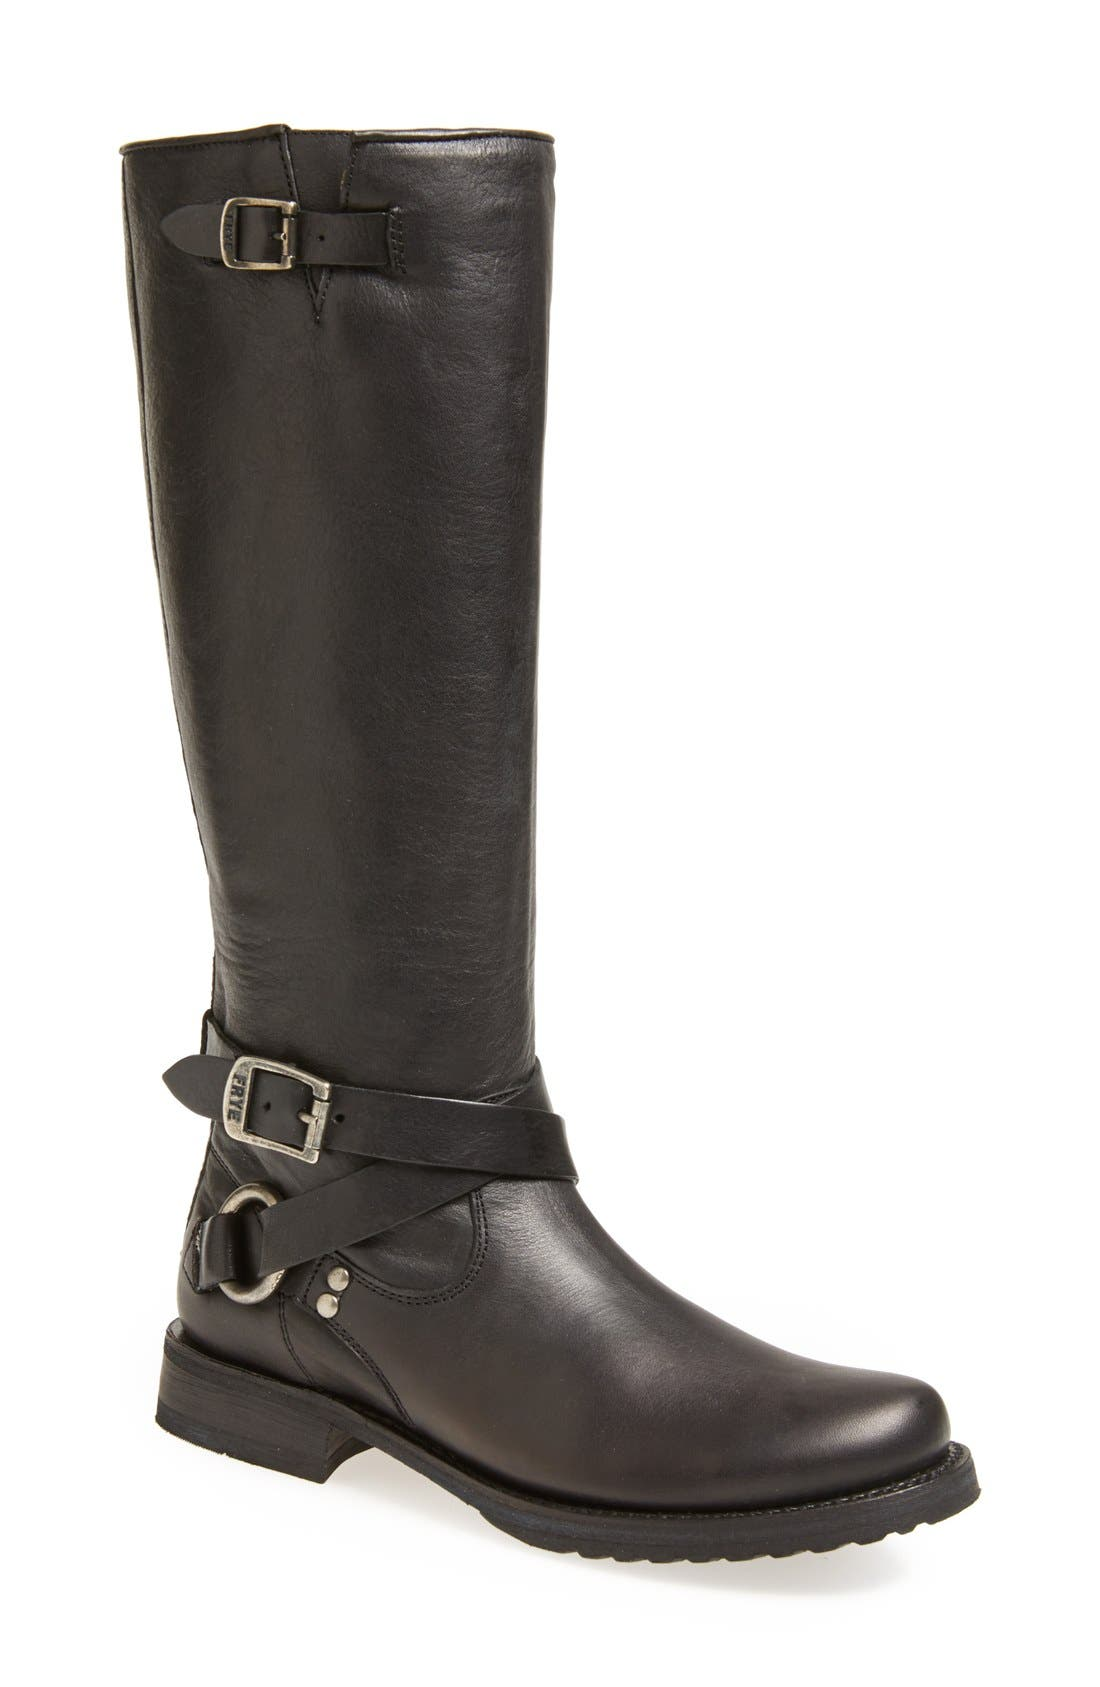 Main Image - Frye 'Veronica' Tall Boot (Women)